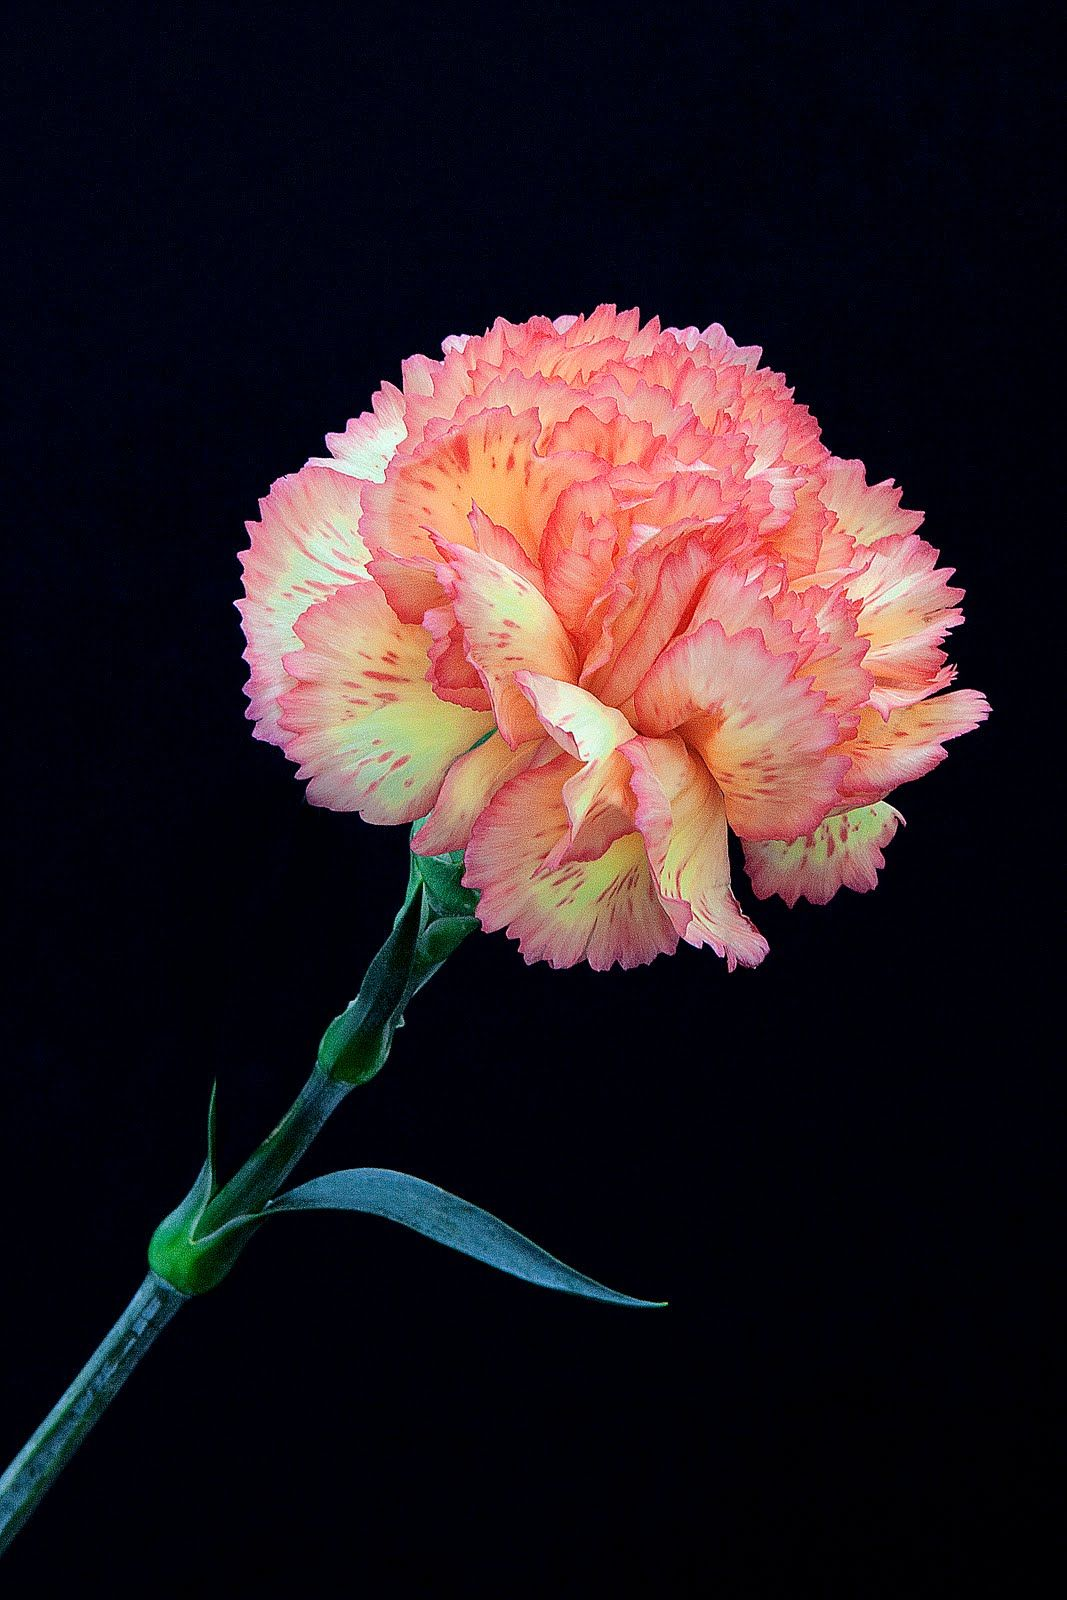 6 Packs Carnation Flower Parts Siro Craft And Mangelsen S Large Silky Carnations In 2020 Carnation Flower Parts Of A Flower Crafts